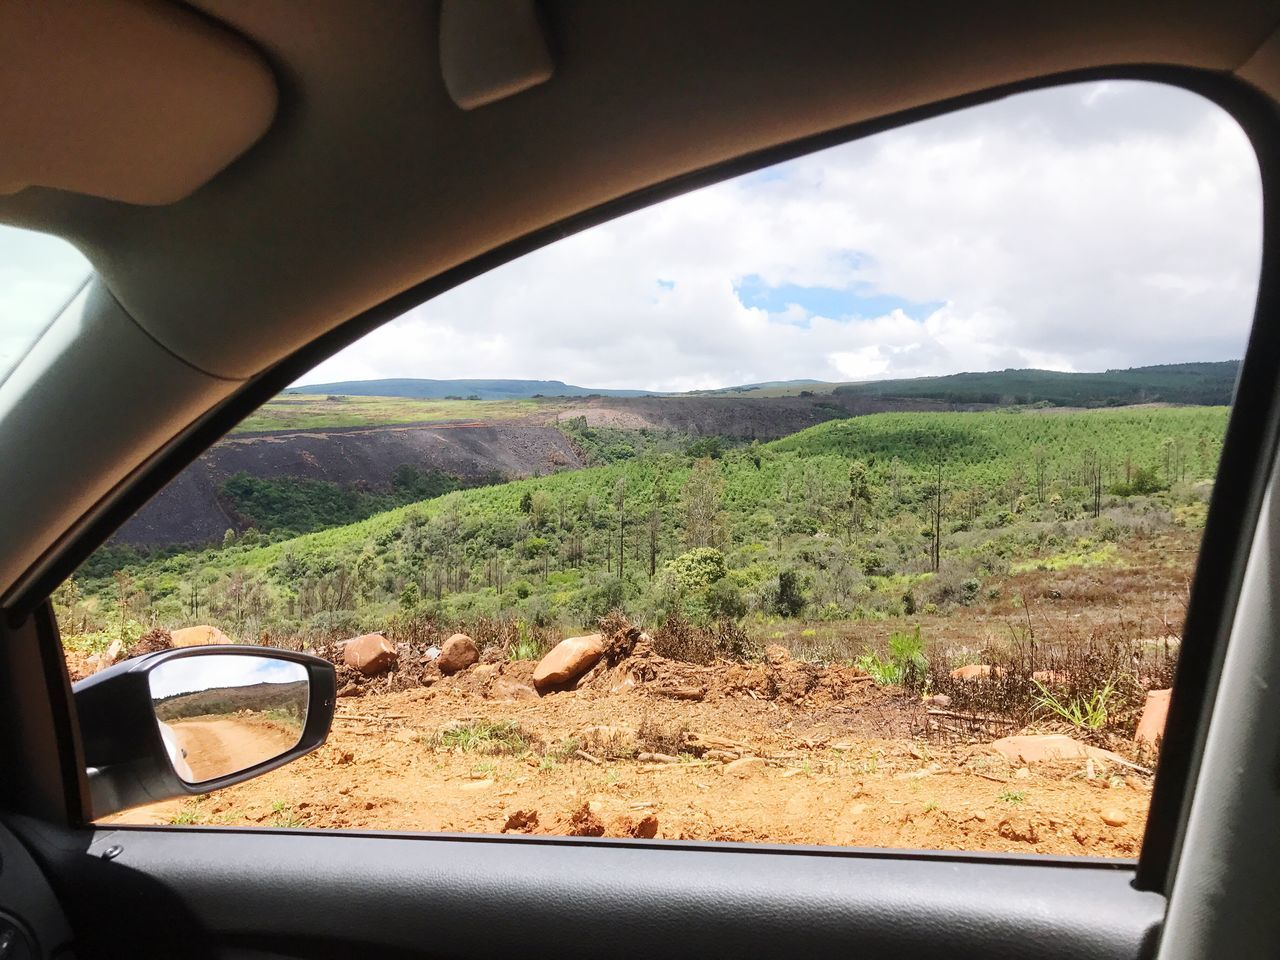 Landscape Car Nature Vehicle Interior Mountain Beauty In Nature Outdoors Roadtrip South Africa